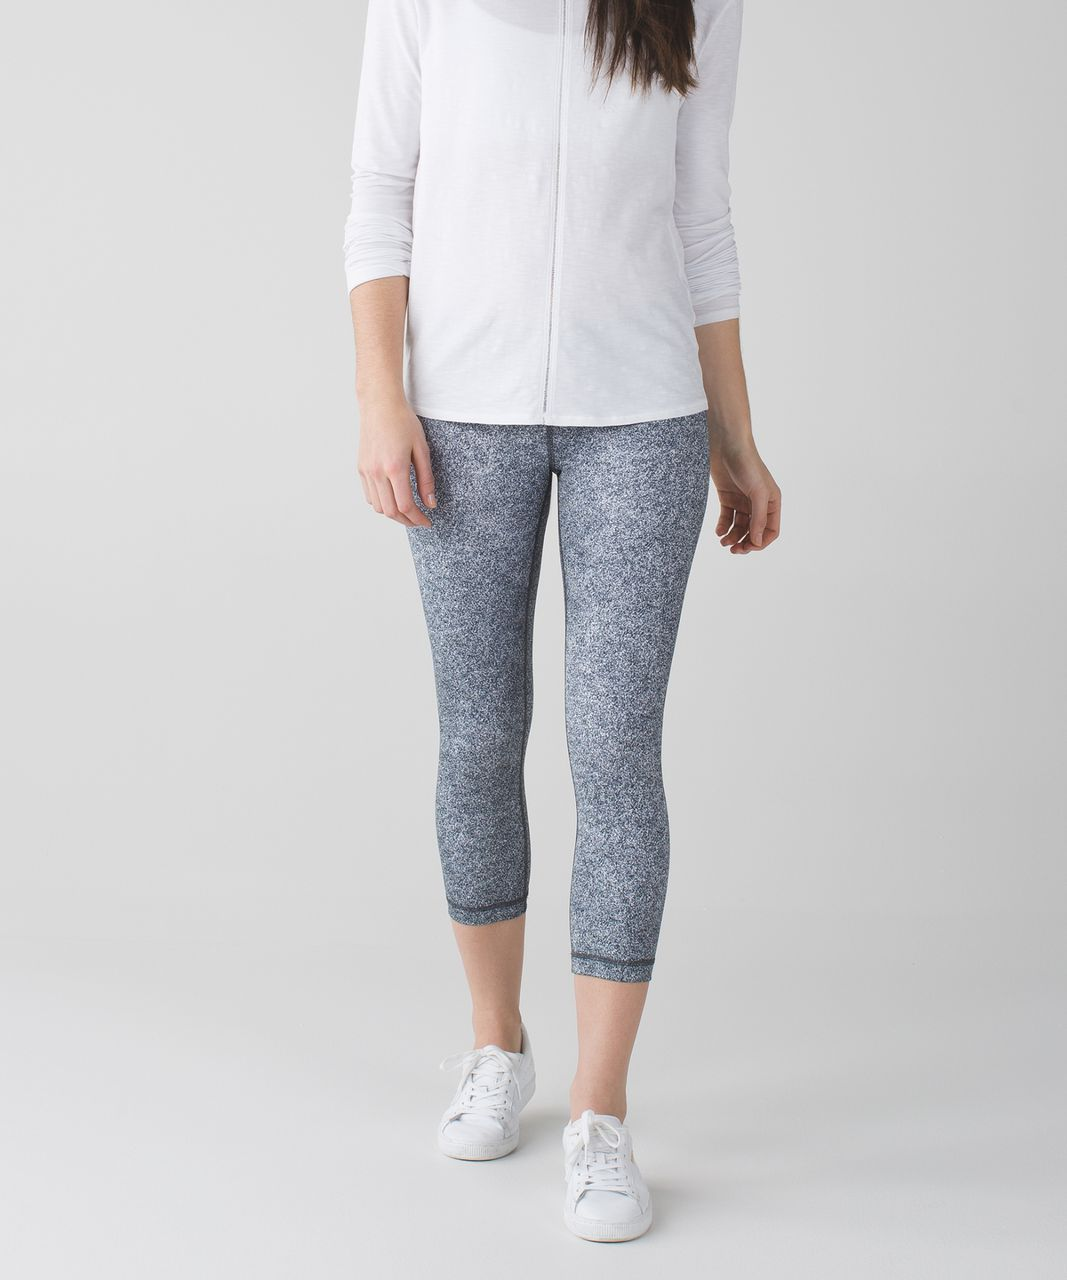 Lululemon Wunder Under Crop III - Rio Mist White Black